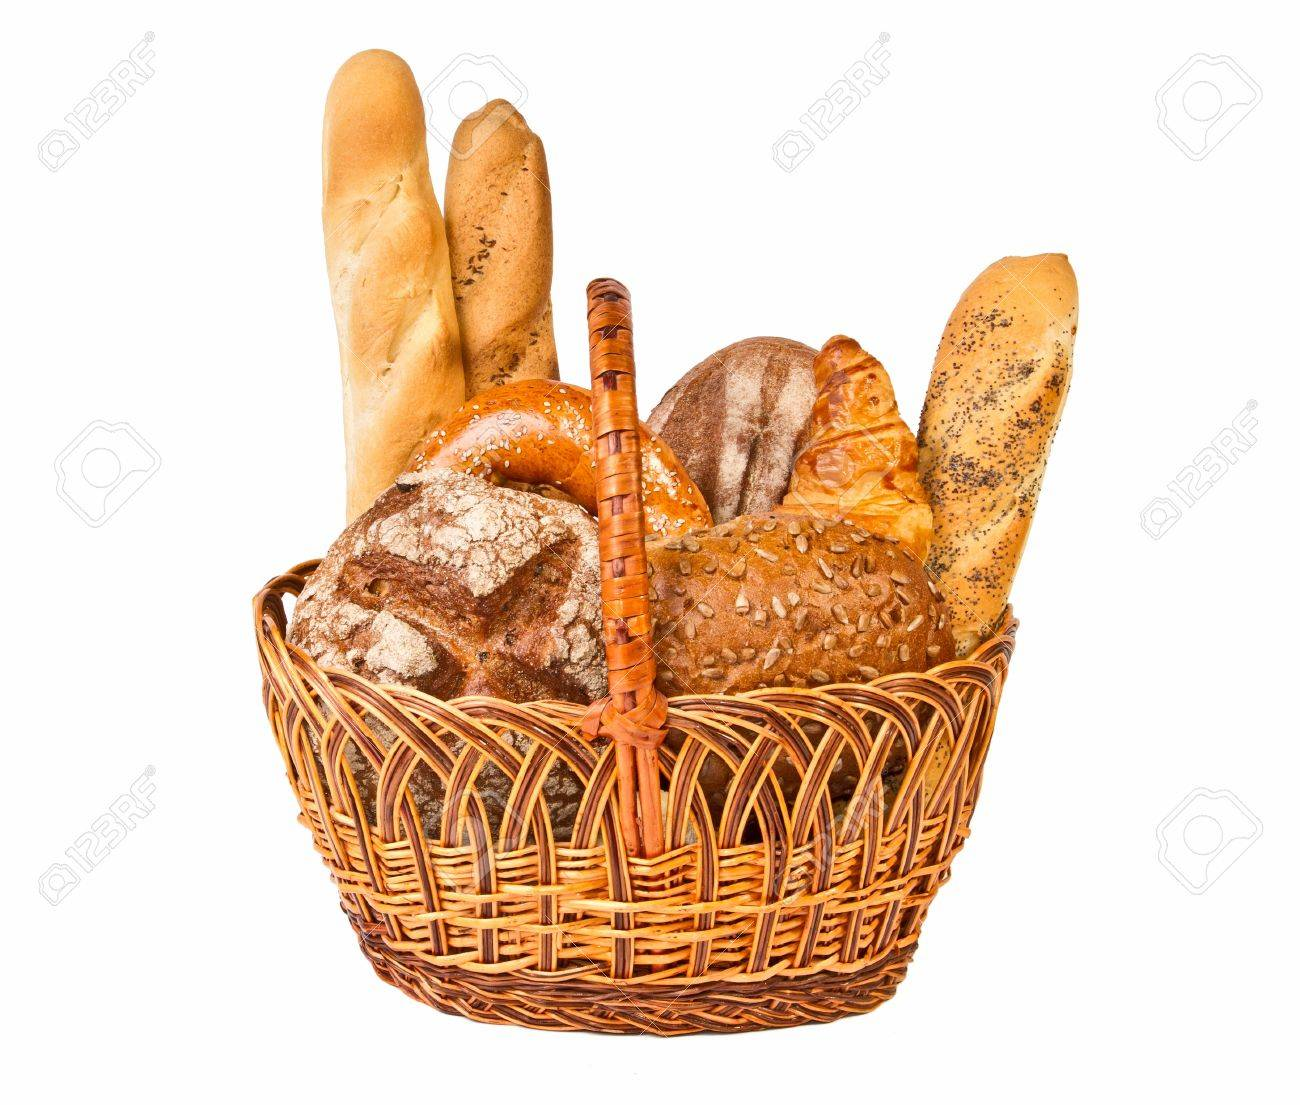 Woven basket with different kind of bread isolated on white background Stock Photo - 9407391